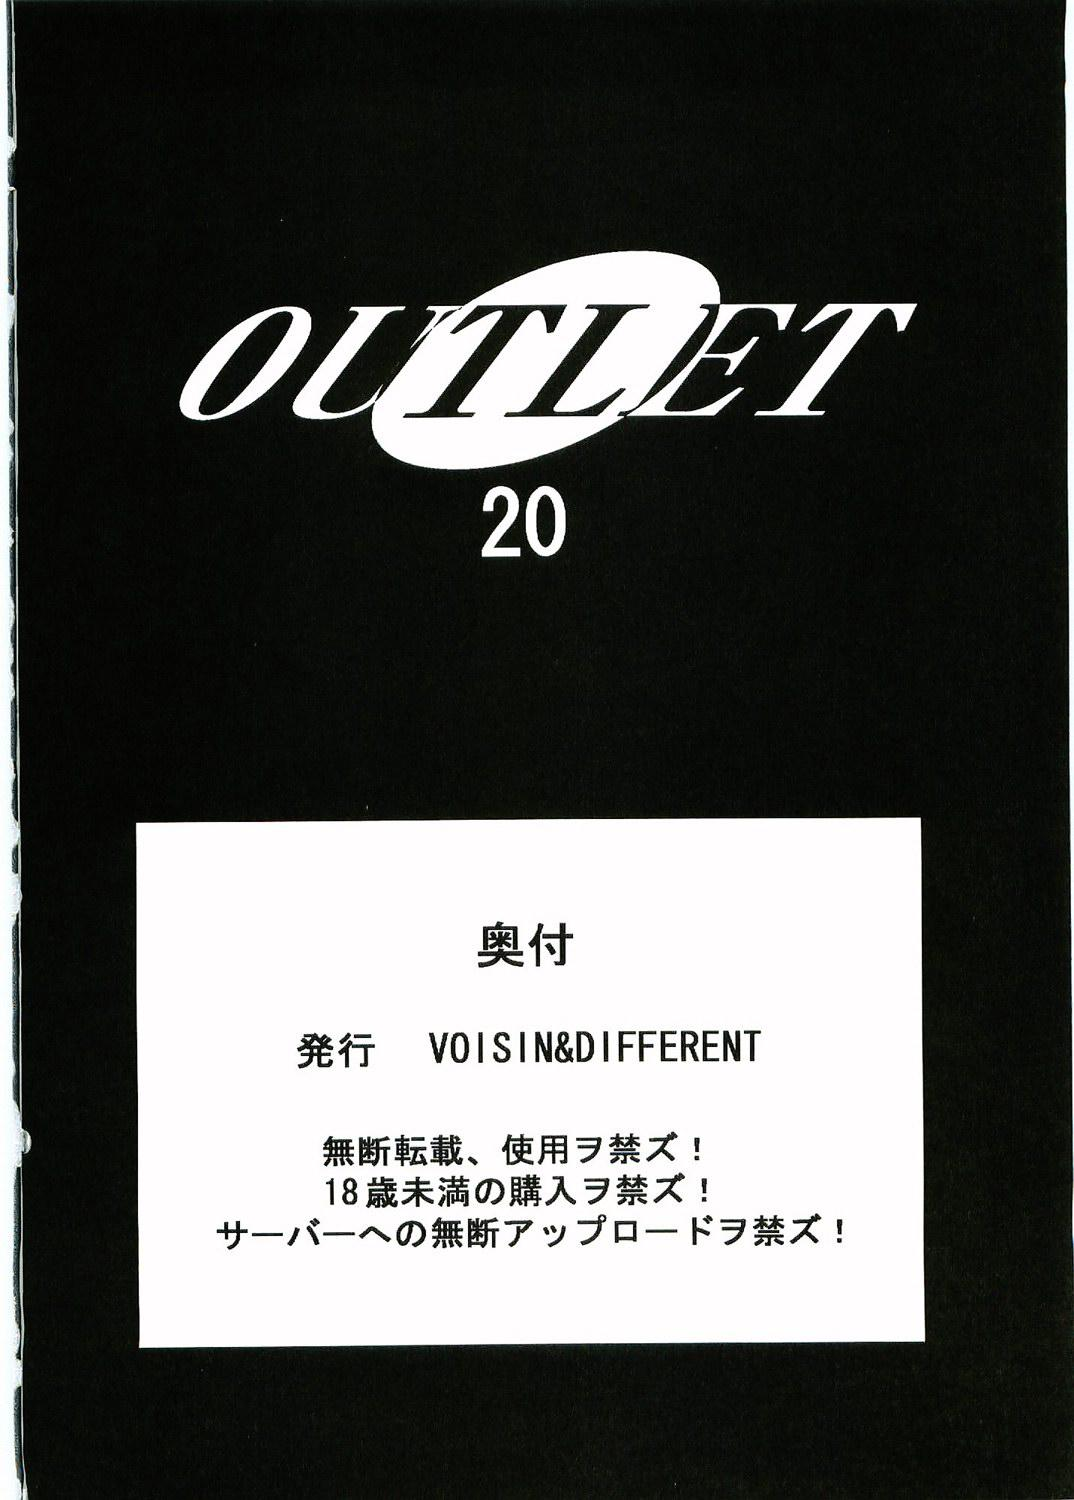 OUTLET 20 48